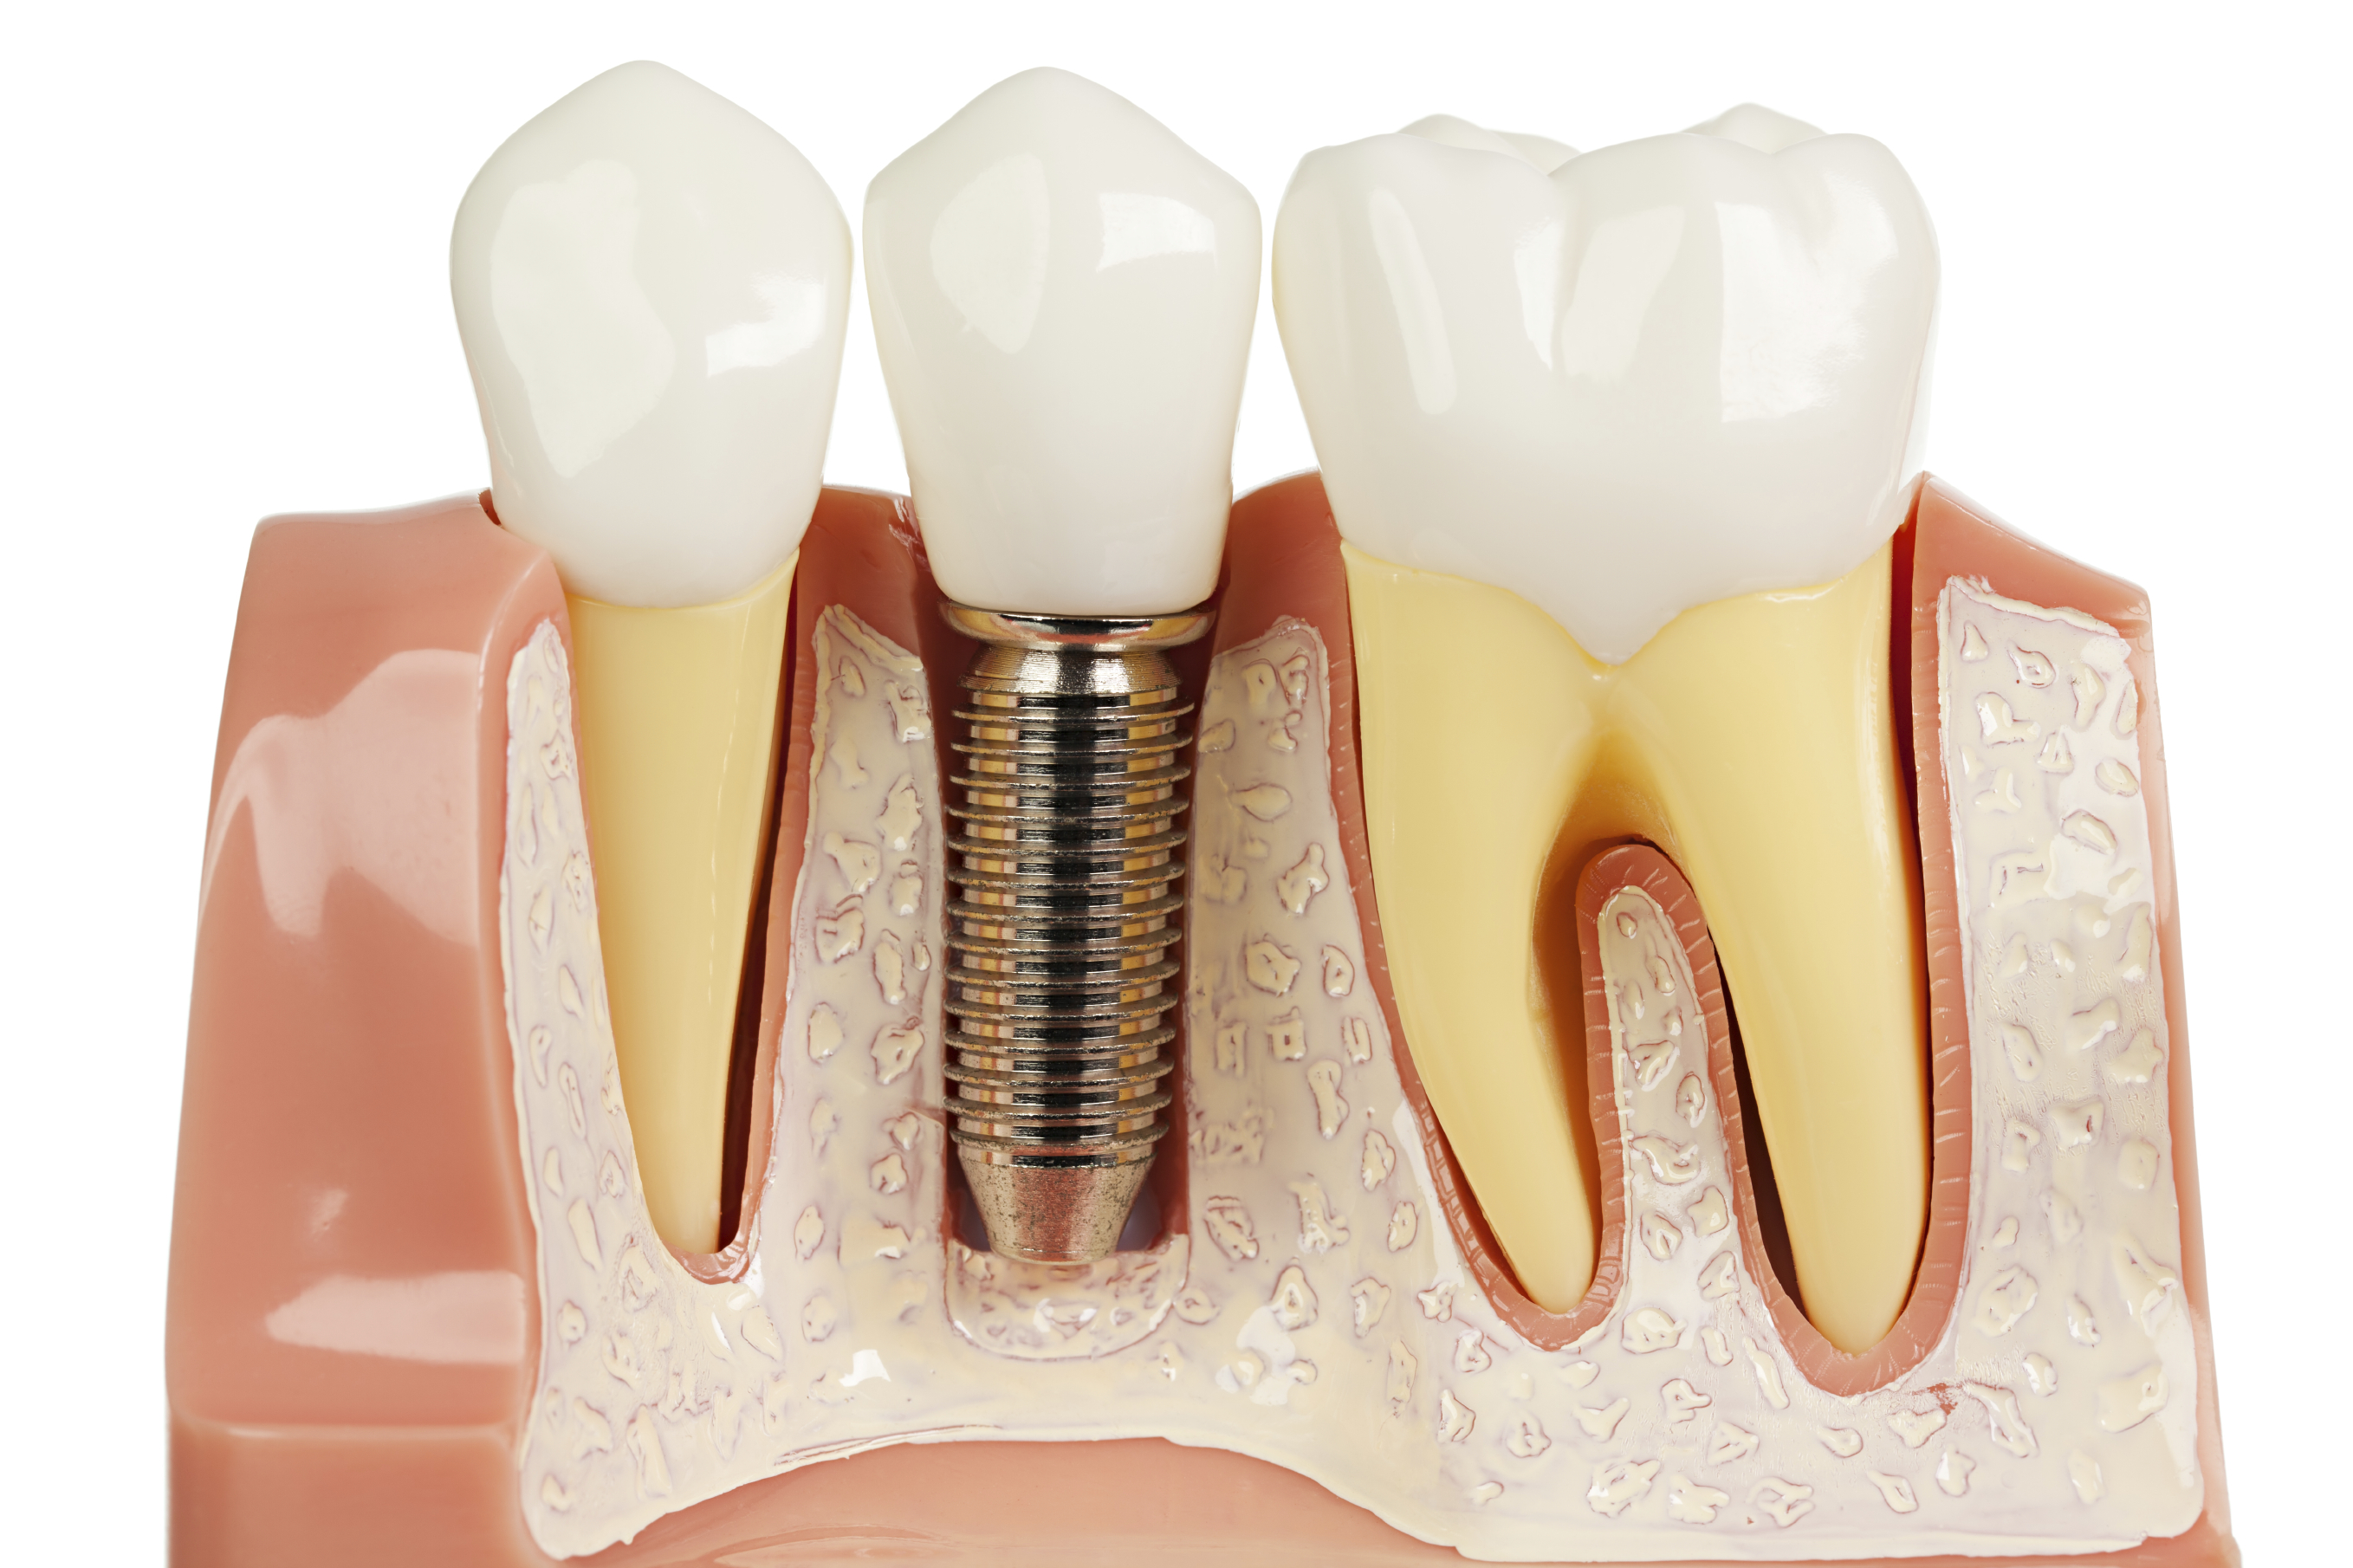 Are All Dental Implants Created Equal?